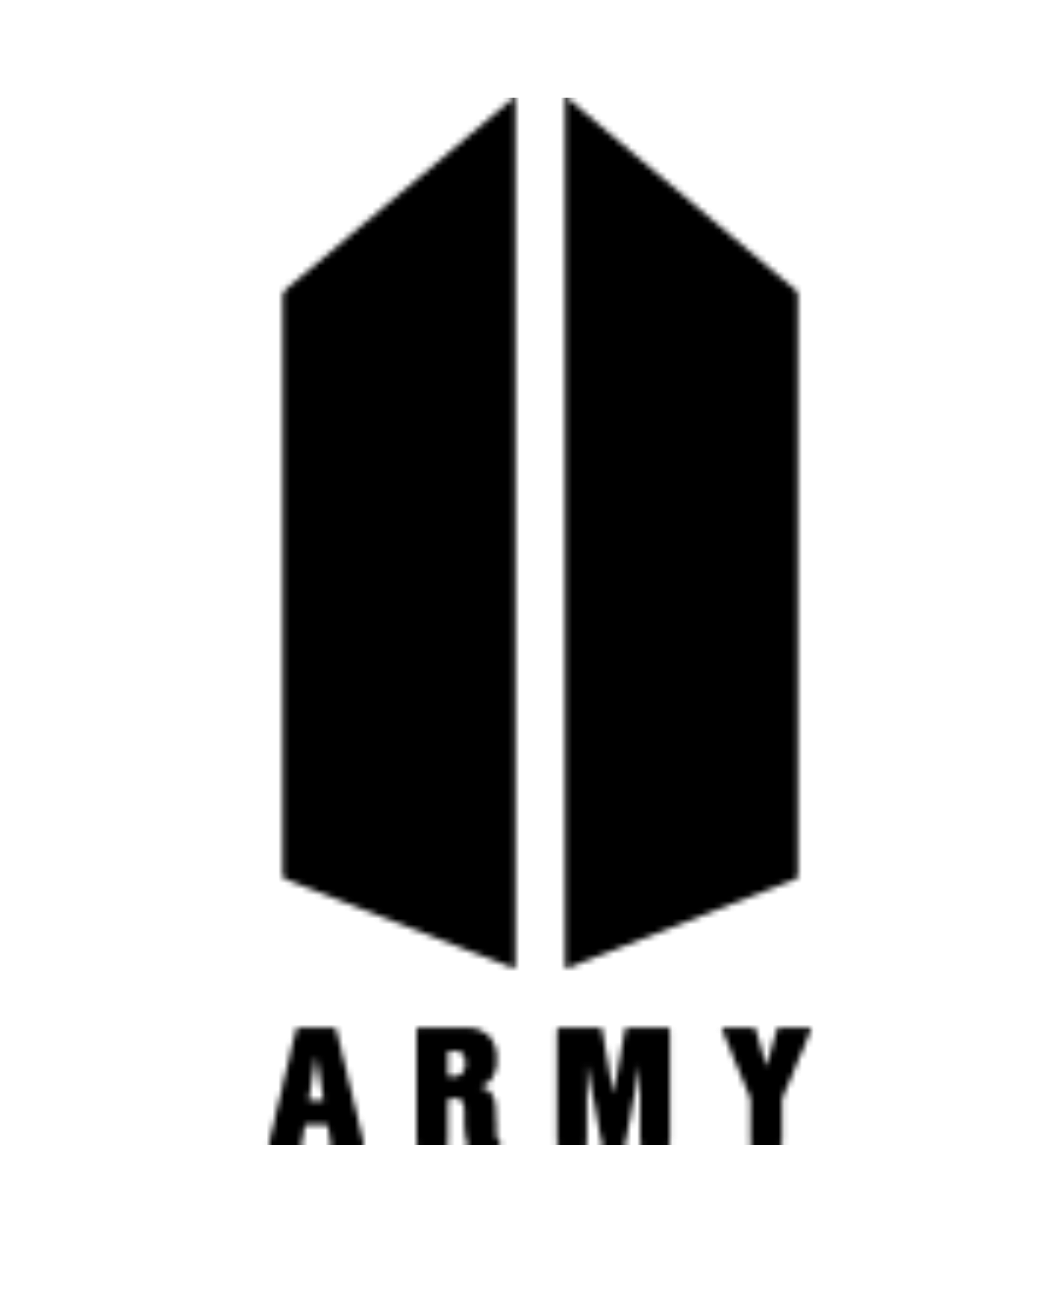 Bts army png. Cropped uougmbl guide httpsbtsarmyguidewpcontentuploadscroppeduougmblpng